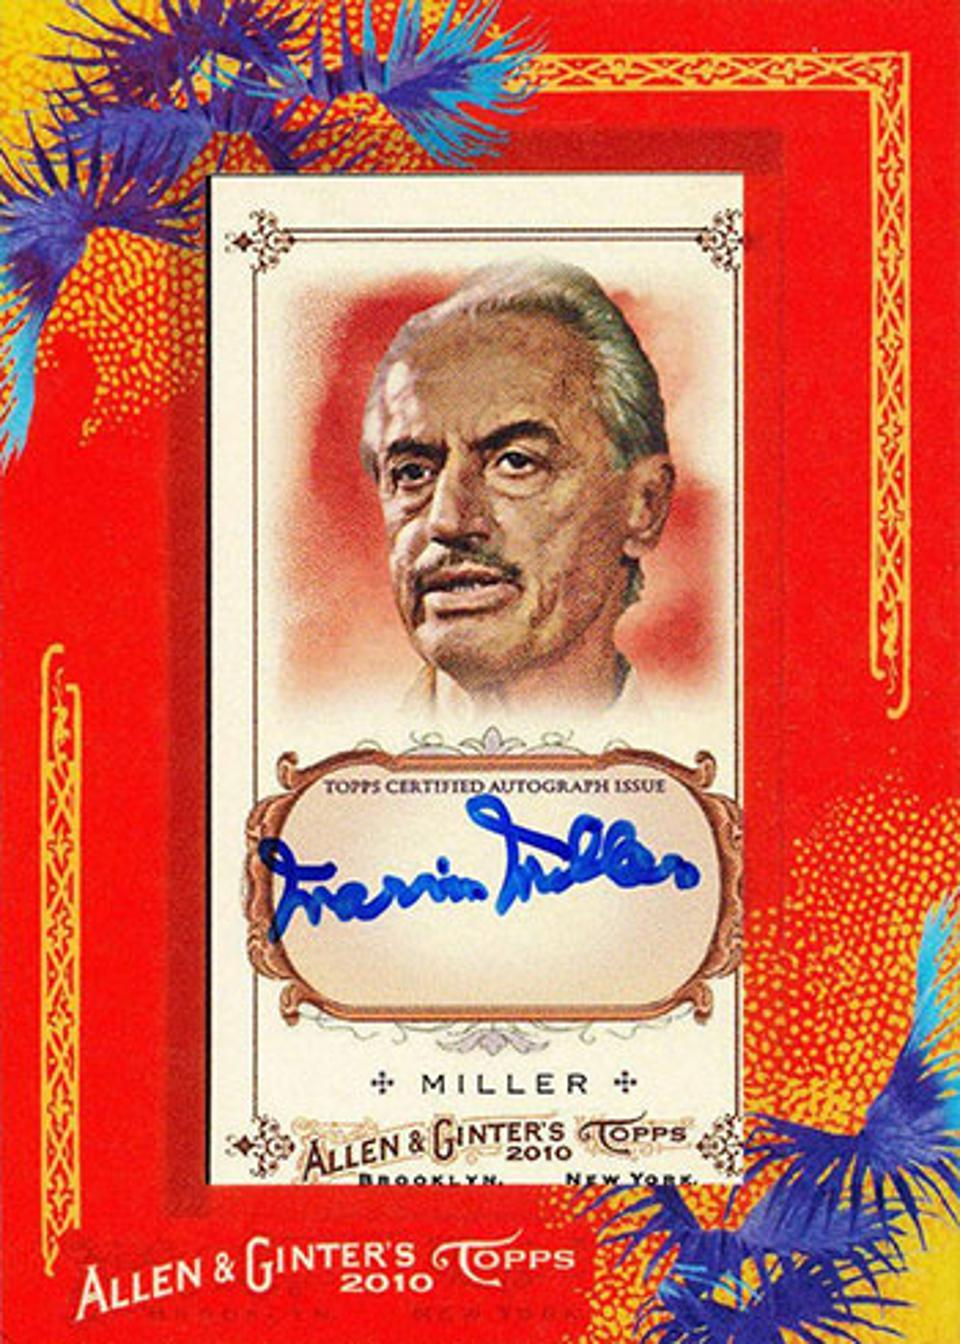 2010 Topps Allen and Ginter Marvin Miller autograph.